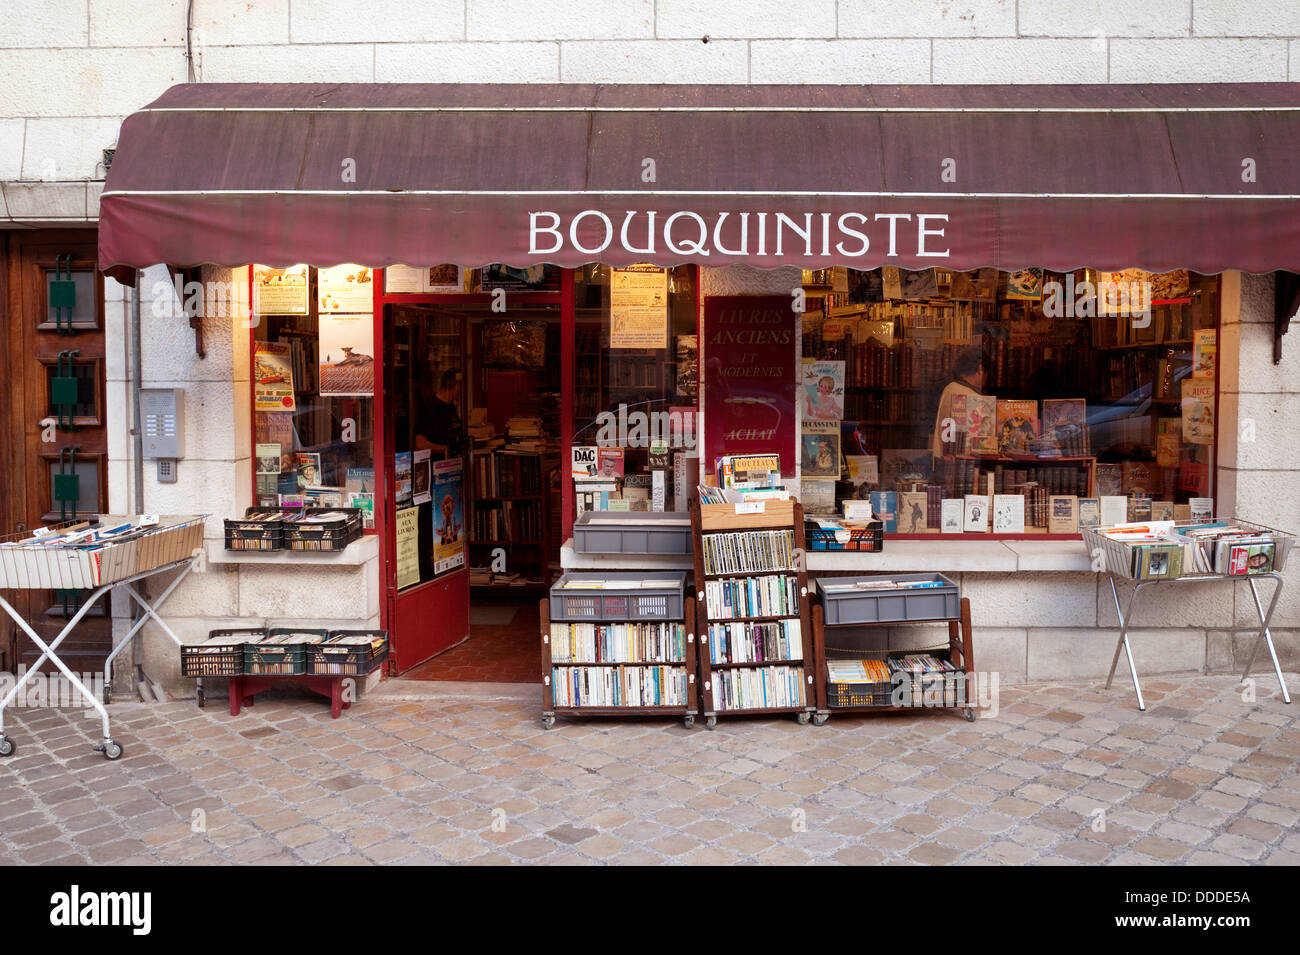 A second hand bookstore or Bouquiniste, Blois, Loire et Cher, France, Europe - Stock Image